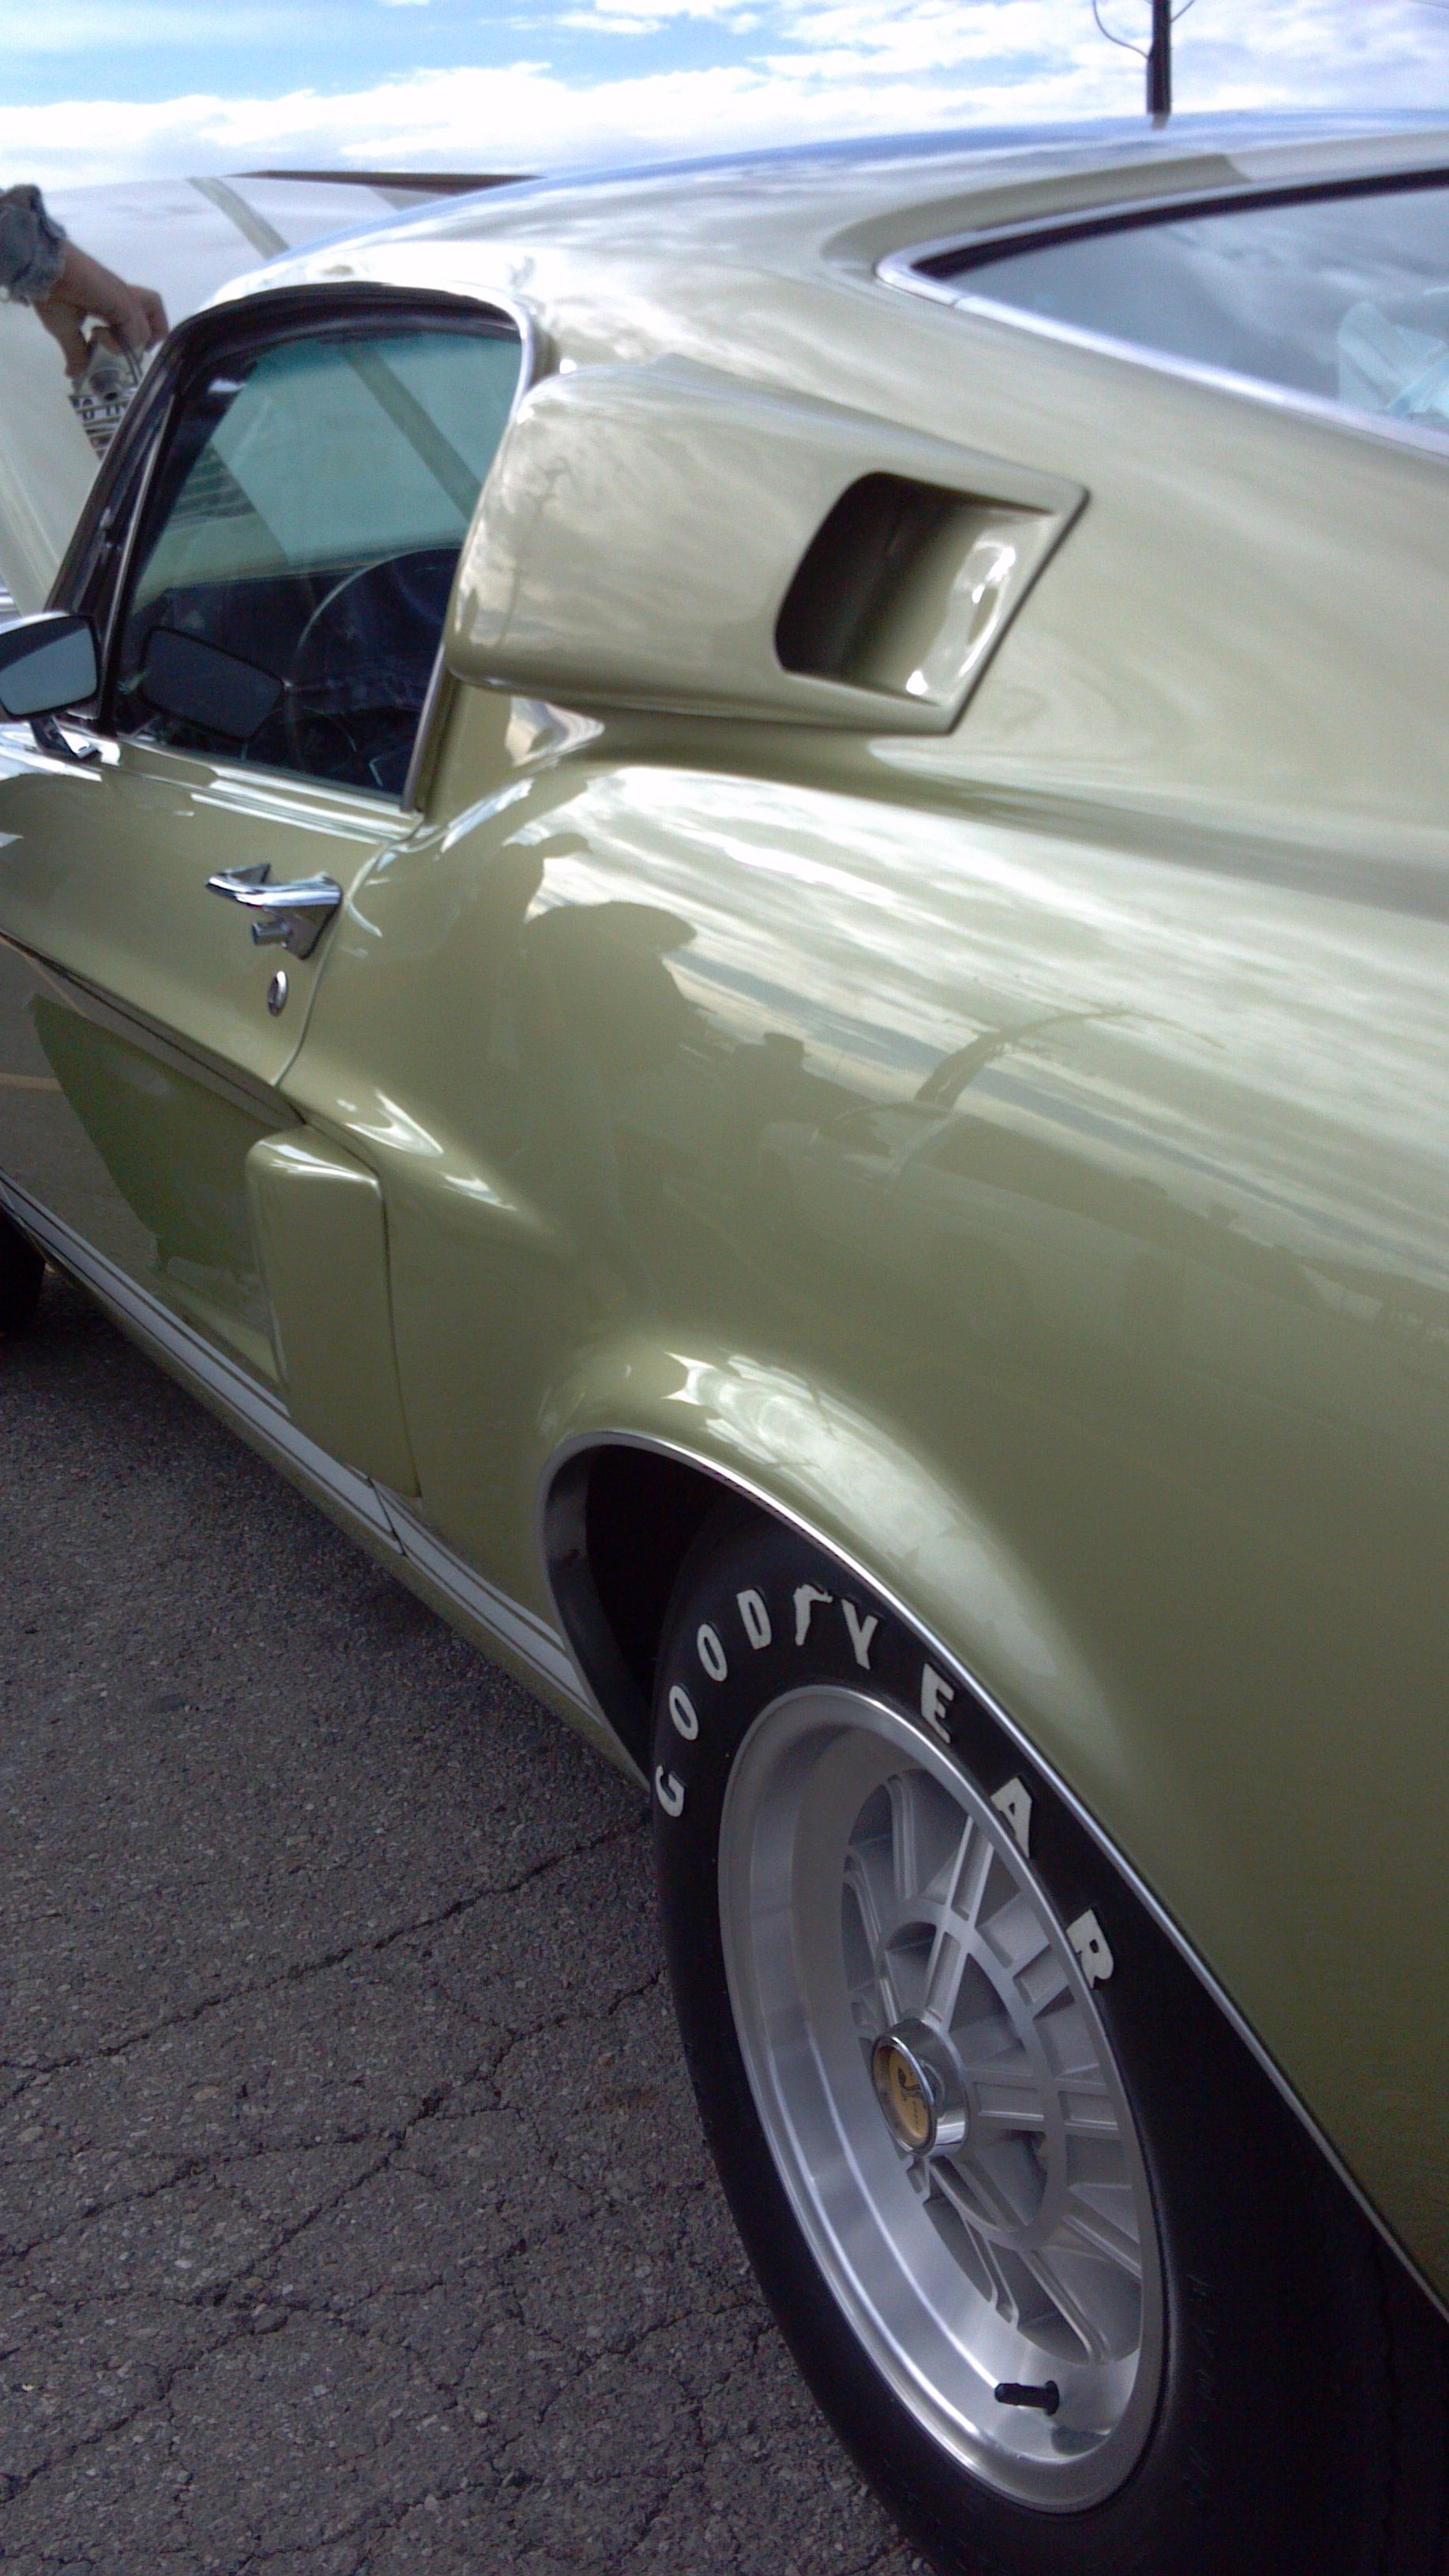 1968 Lime Gold GT 500 KR e bring your hot car to any location